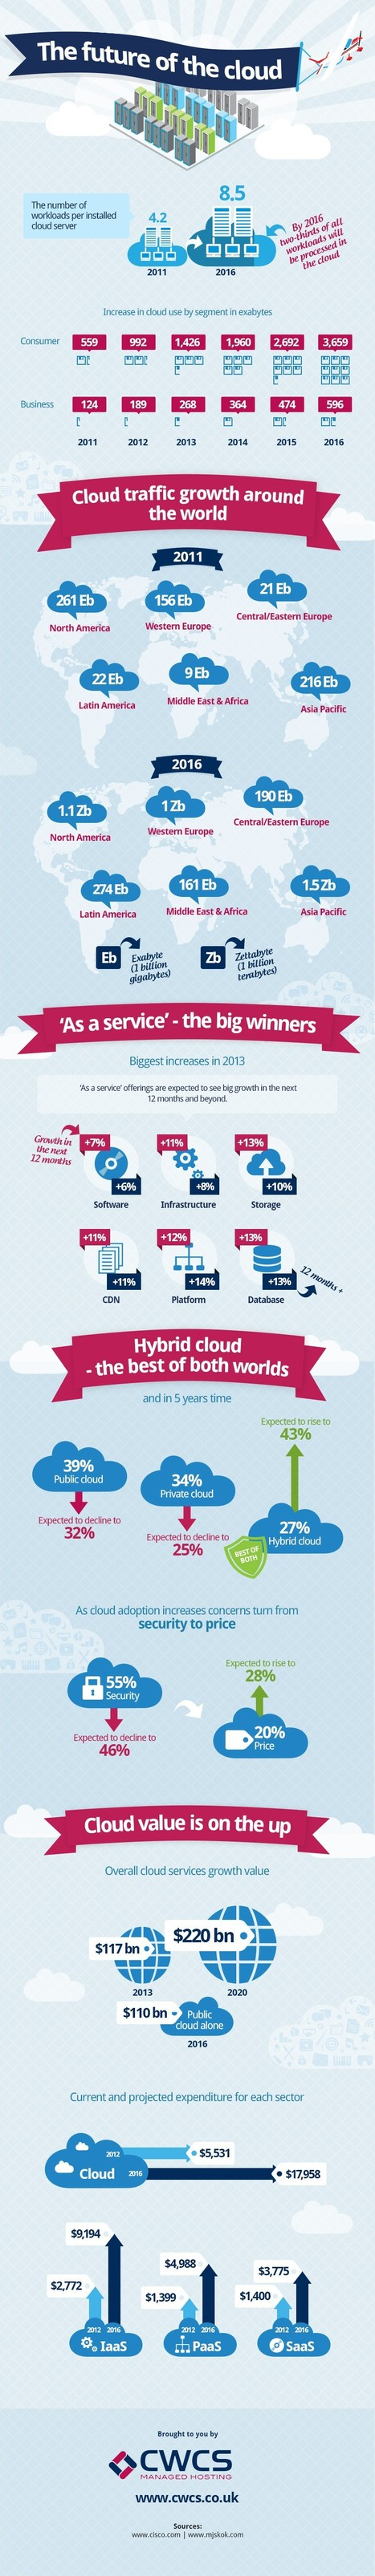 The Future Of The Cloud [Infographic] | Tips And Tricks For Pc, Mobile, Blogging, SEO, Earning online, etc... | Scoop.it